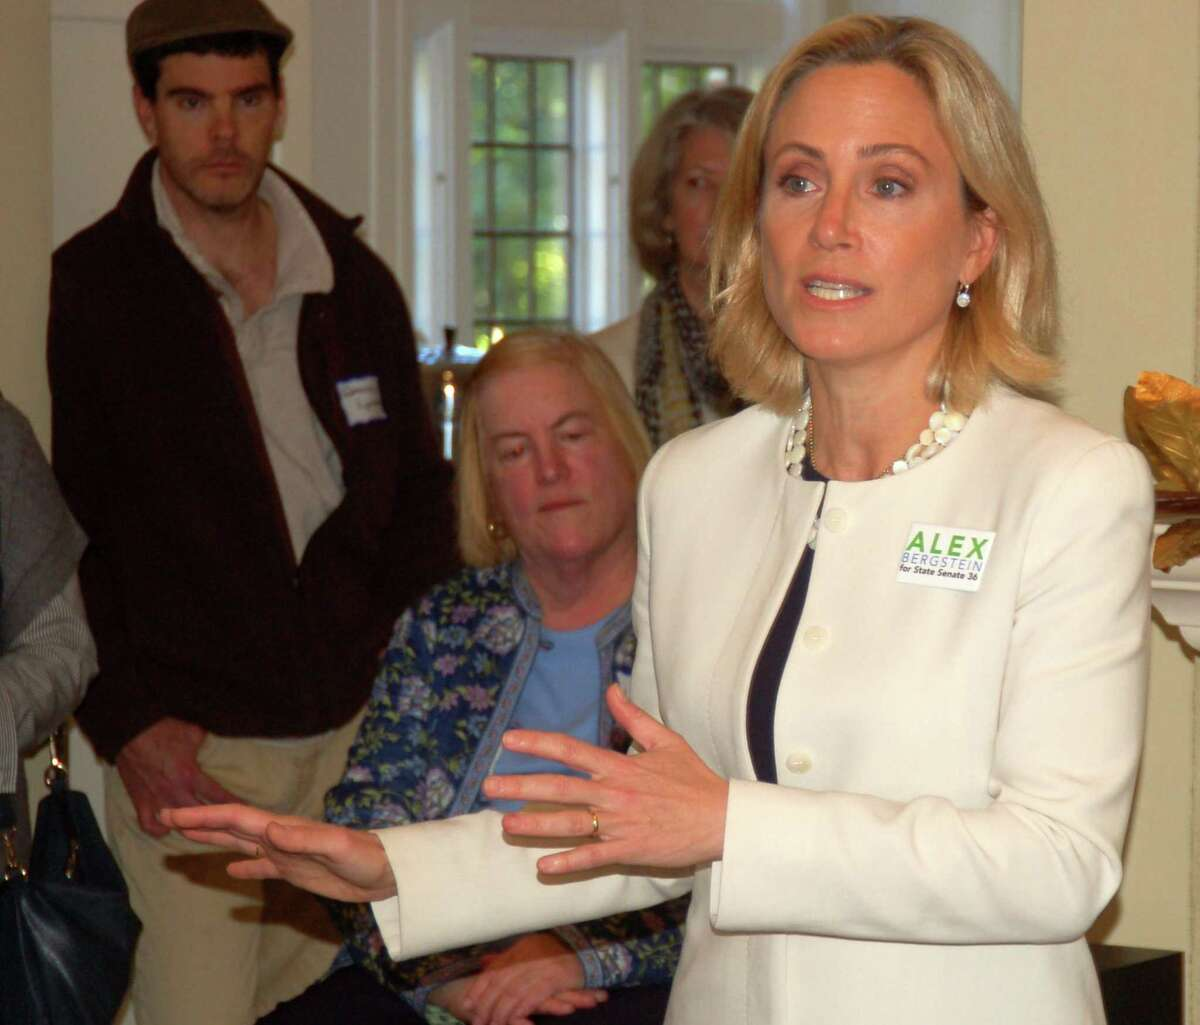 Alexandra Bergstein, Democratic candidate for state Senate District 36, and Lt. Governor candidate Susan Bysciewicz campaigned at an event at the home of former Greenwich Selectwoman Lin Lavery in Greenwich on Oct. 23, 2018. The two took the opportunity to urge their supporters to get out the vote.